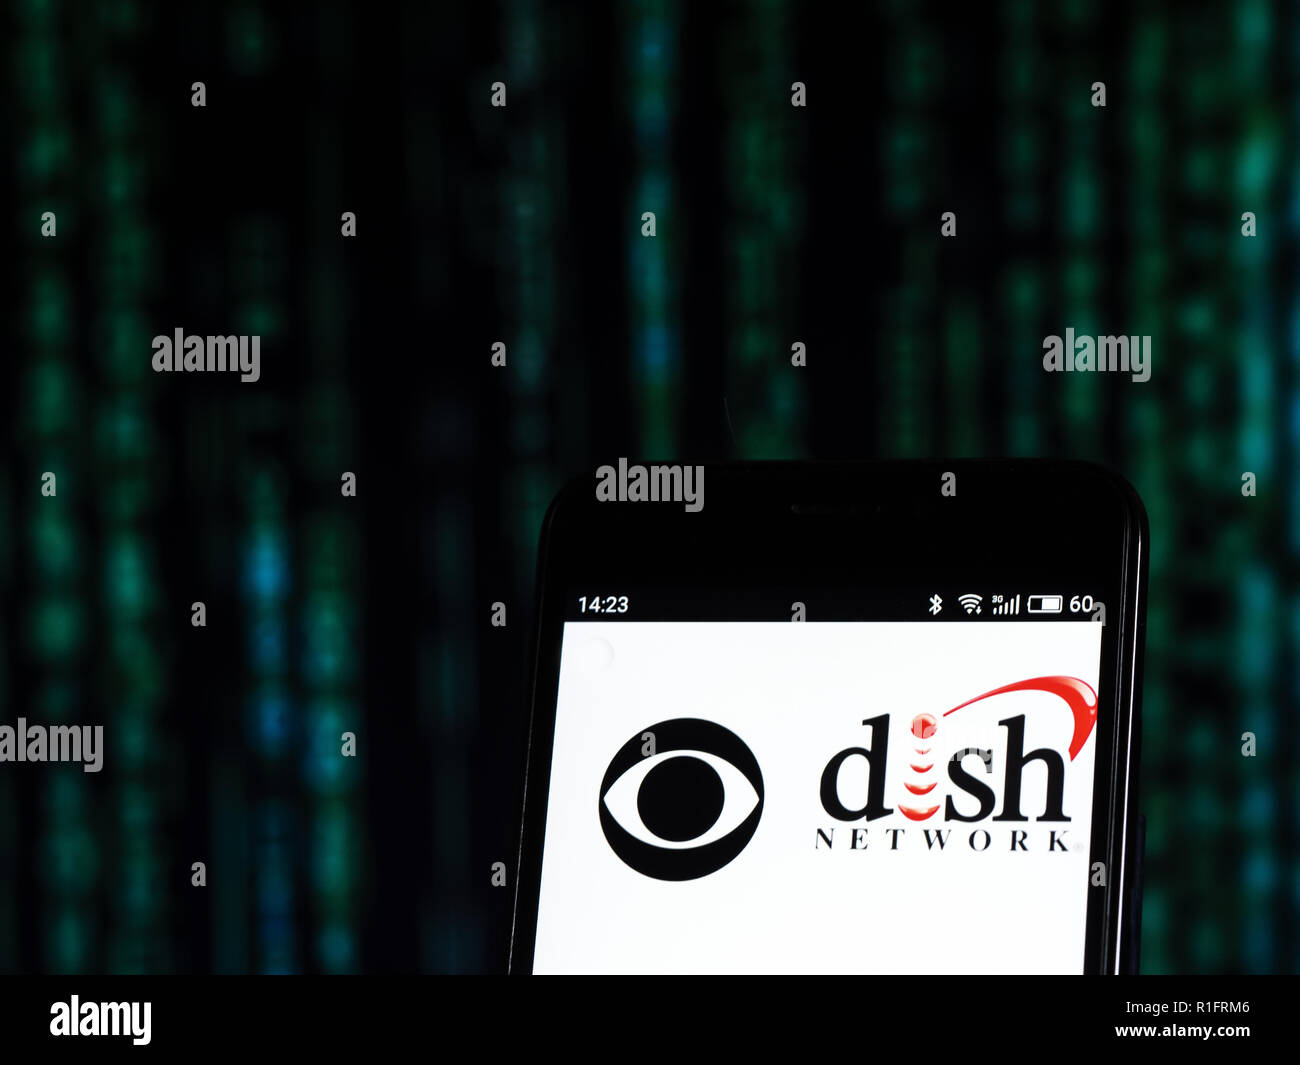 Iptv Service Stock Photos & Iptv Service Stock Images - Alamy